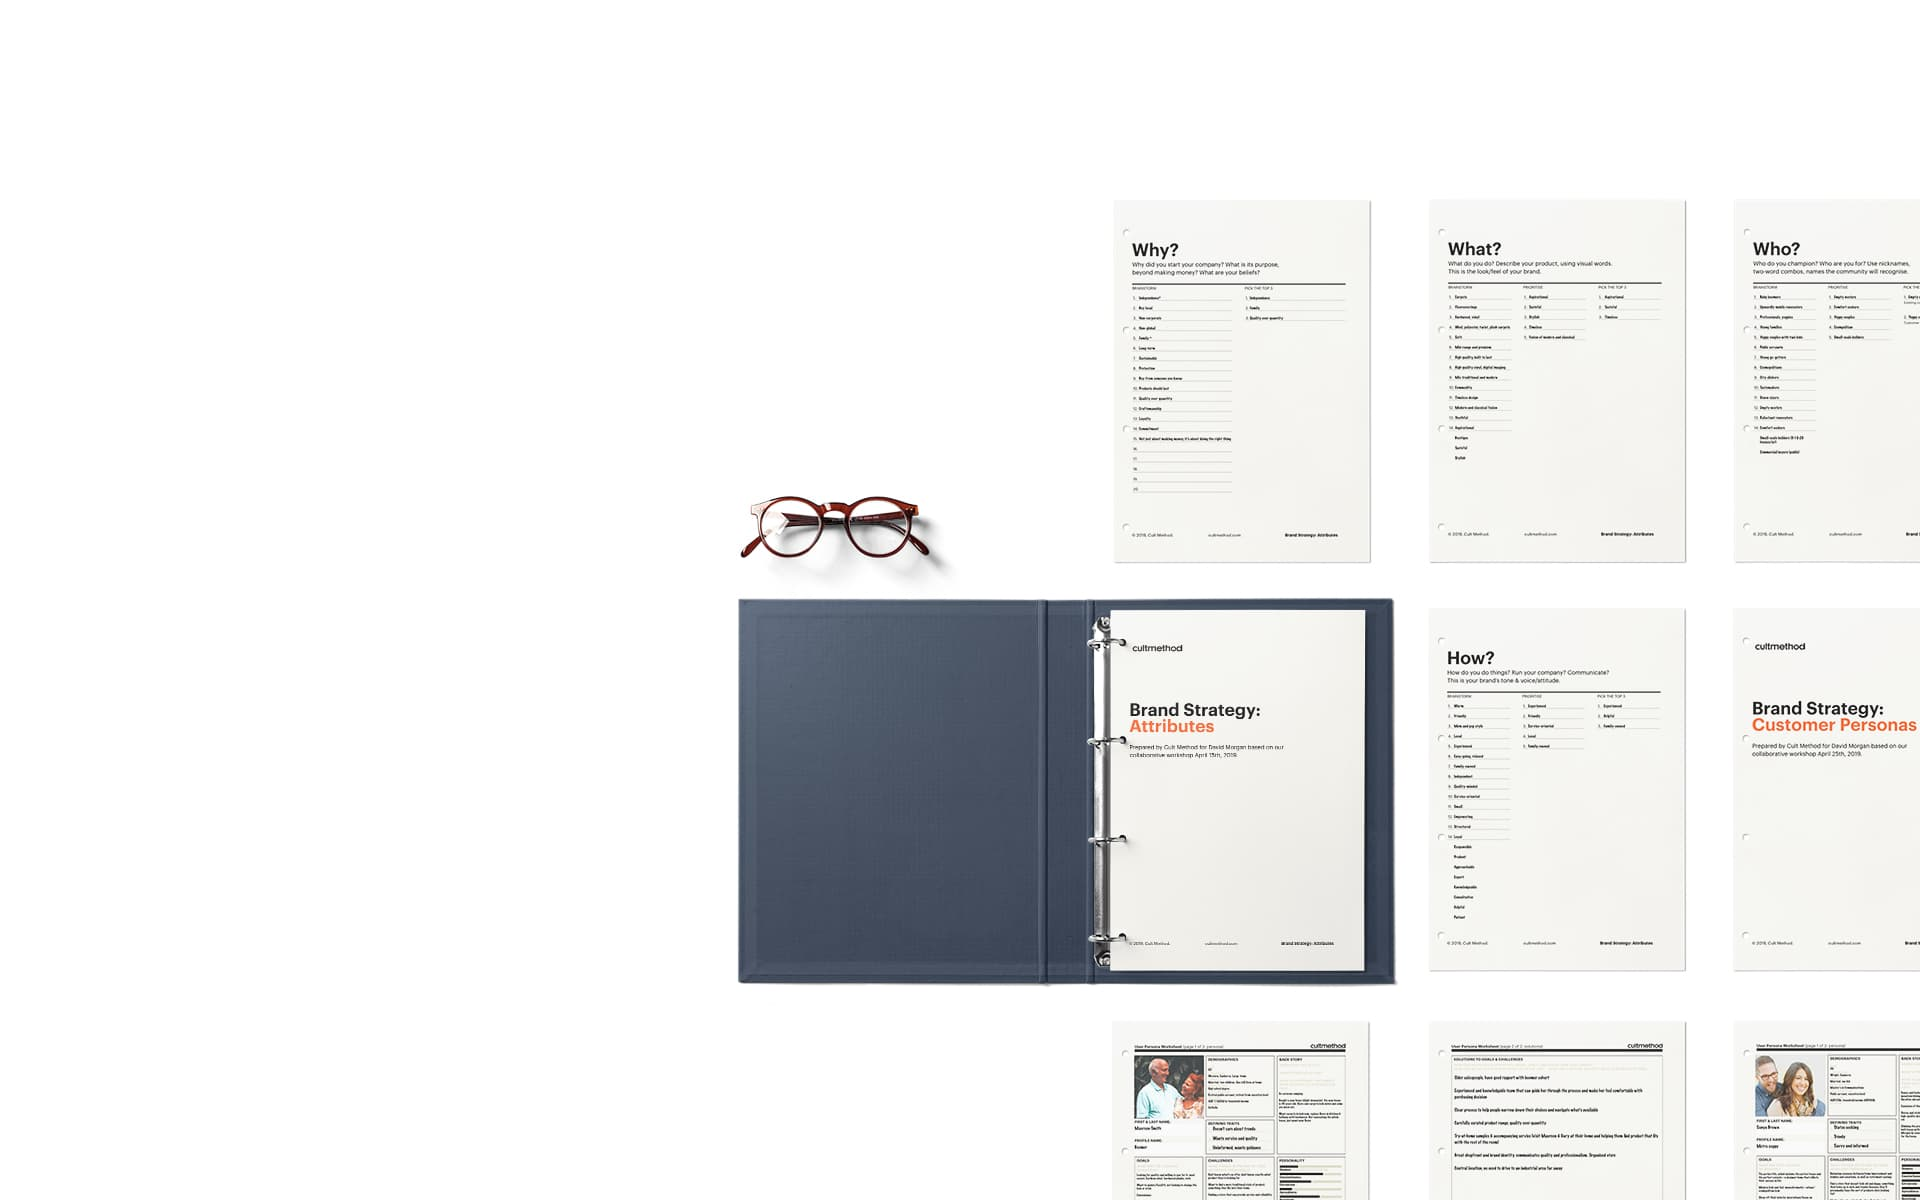 Brand strategy documents